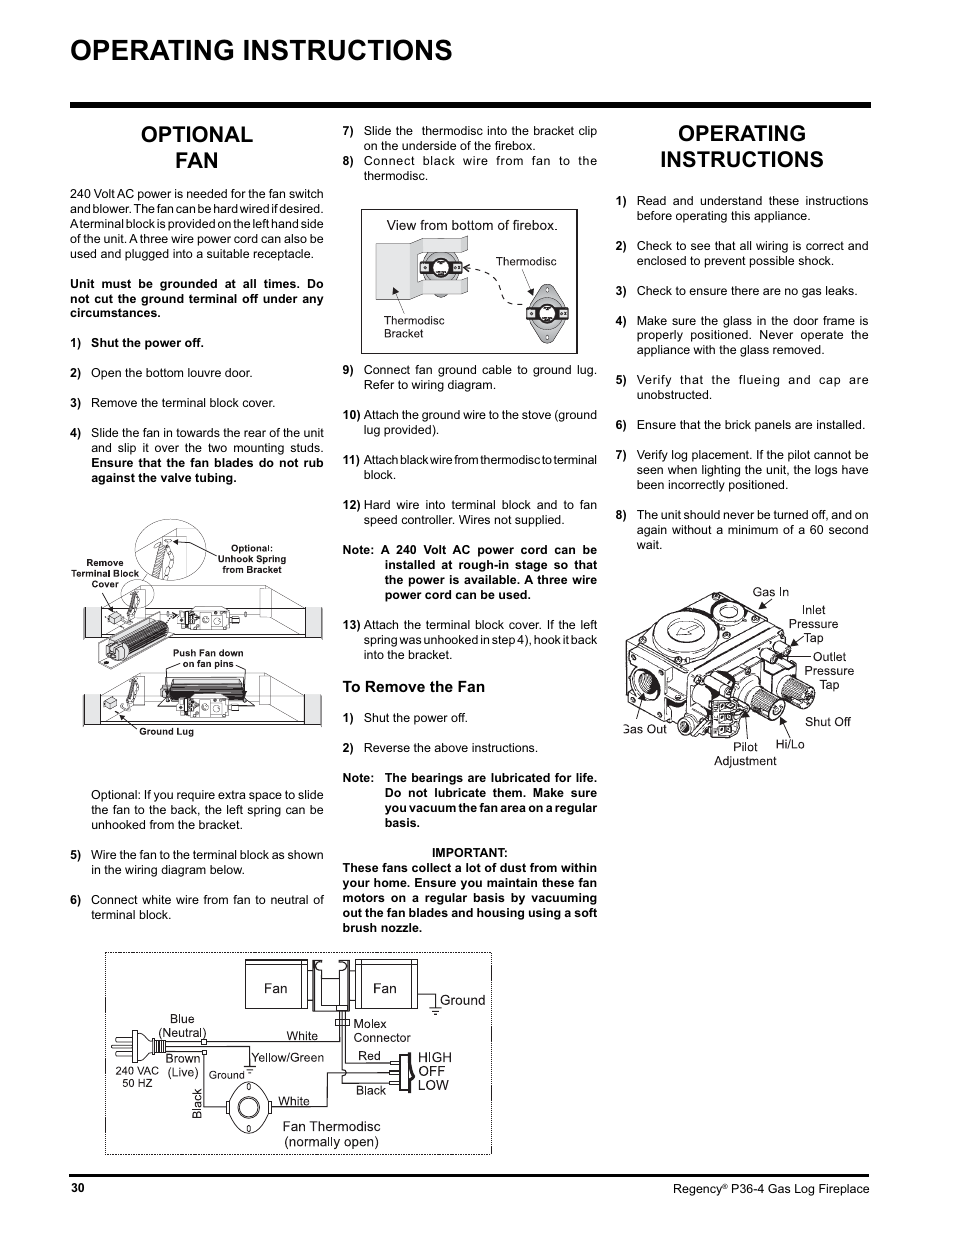 regency wraps p36 lpg4 page30 thermodisc wiring 3 wire switch diagram wiring diagrams thermodisc wiring diagram at crackthecode.co